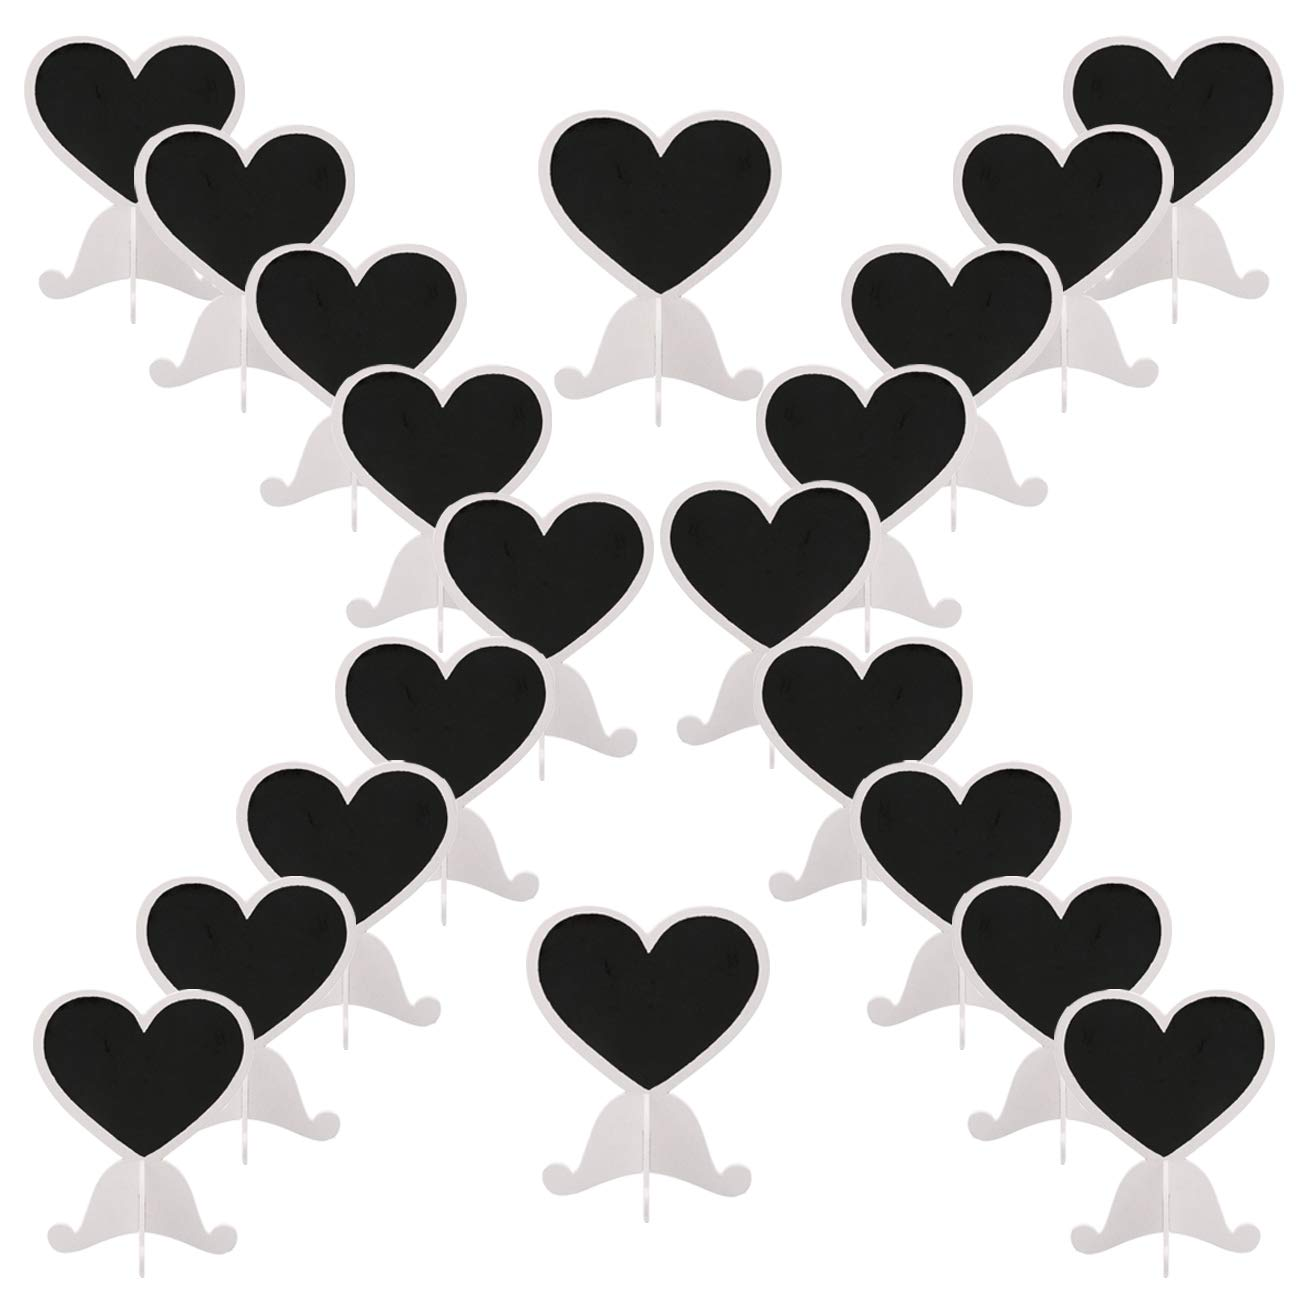 Dedoot Mini Chalkboards Signs with Stand, Pack of 20 Wood Heart Small Chalkboard Place Cards with Easel Stand, Perfect for Daily Home Decoration, Weddings, Party, Table Numbers, Food Signs - White by Dedoot